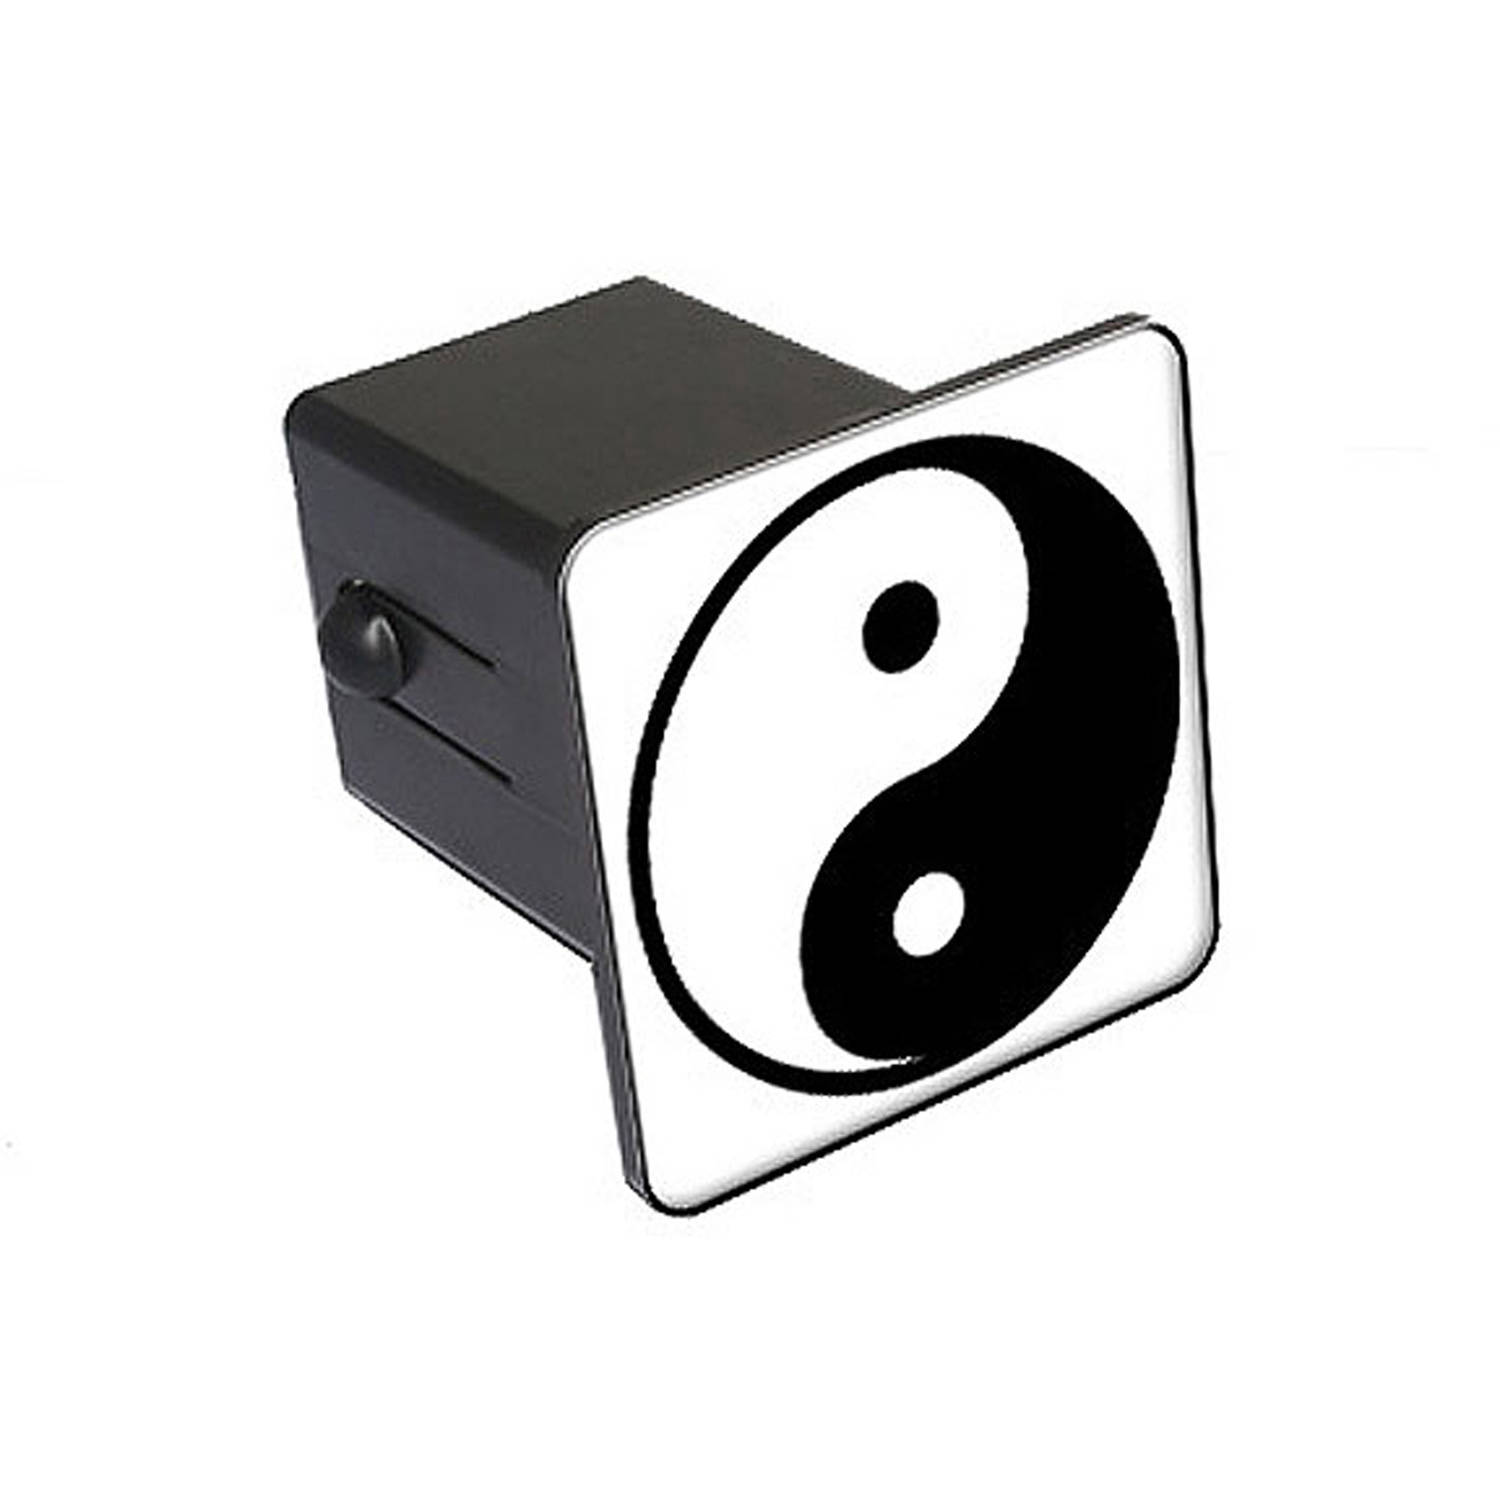 "Yin And Yang 2"" Tow Trailer Hitch Cover Plug Insert"